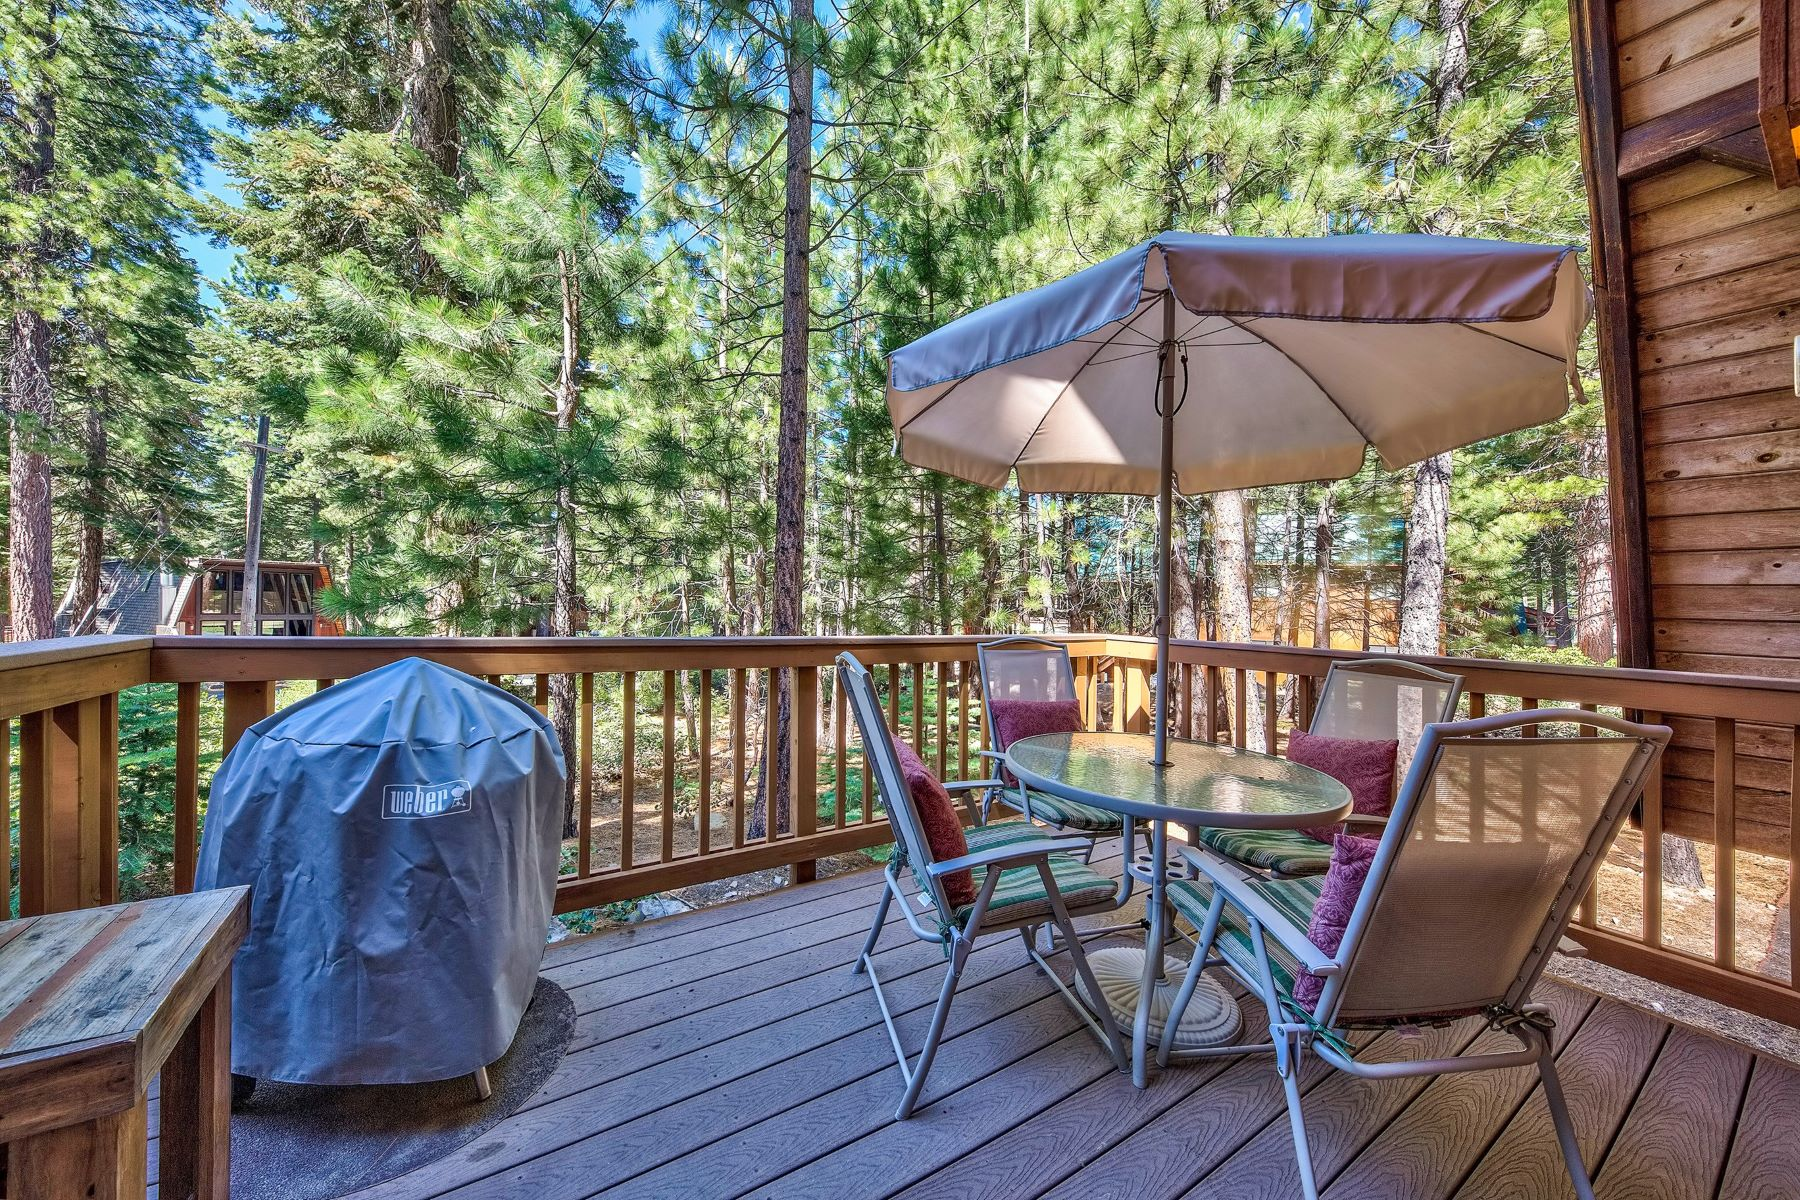 Additional photo for property listing at 5635 Dakar Road, Carnelian Bay, CA 5635 Dakar Road Carnelian Bay, 加利福尼亚州 96140 美国